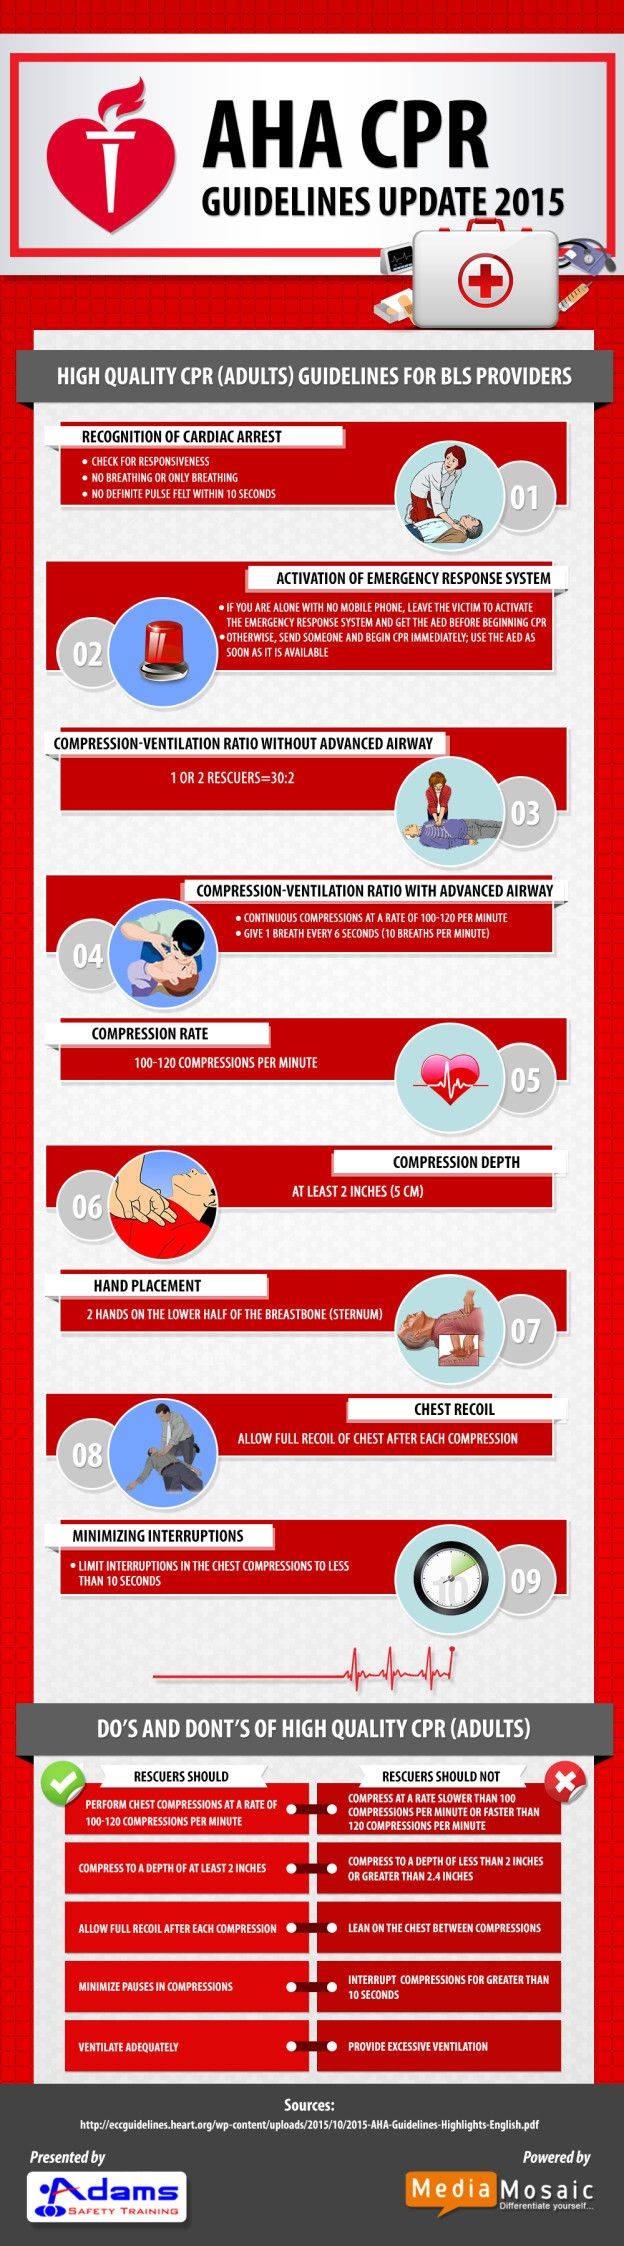 The Infographic describes the key elements of 2015 AHA Guidelines Update for CPR. These guidelines are given by American Heart Association updated every 5 years http:∕∕www.adamssafety.com∕blog∕2015-aha-guidelines-update-for-cpr-infographic∕